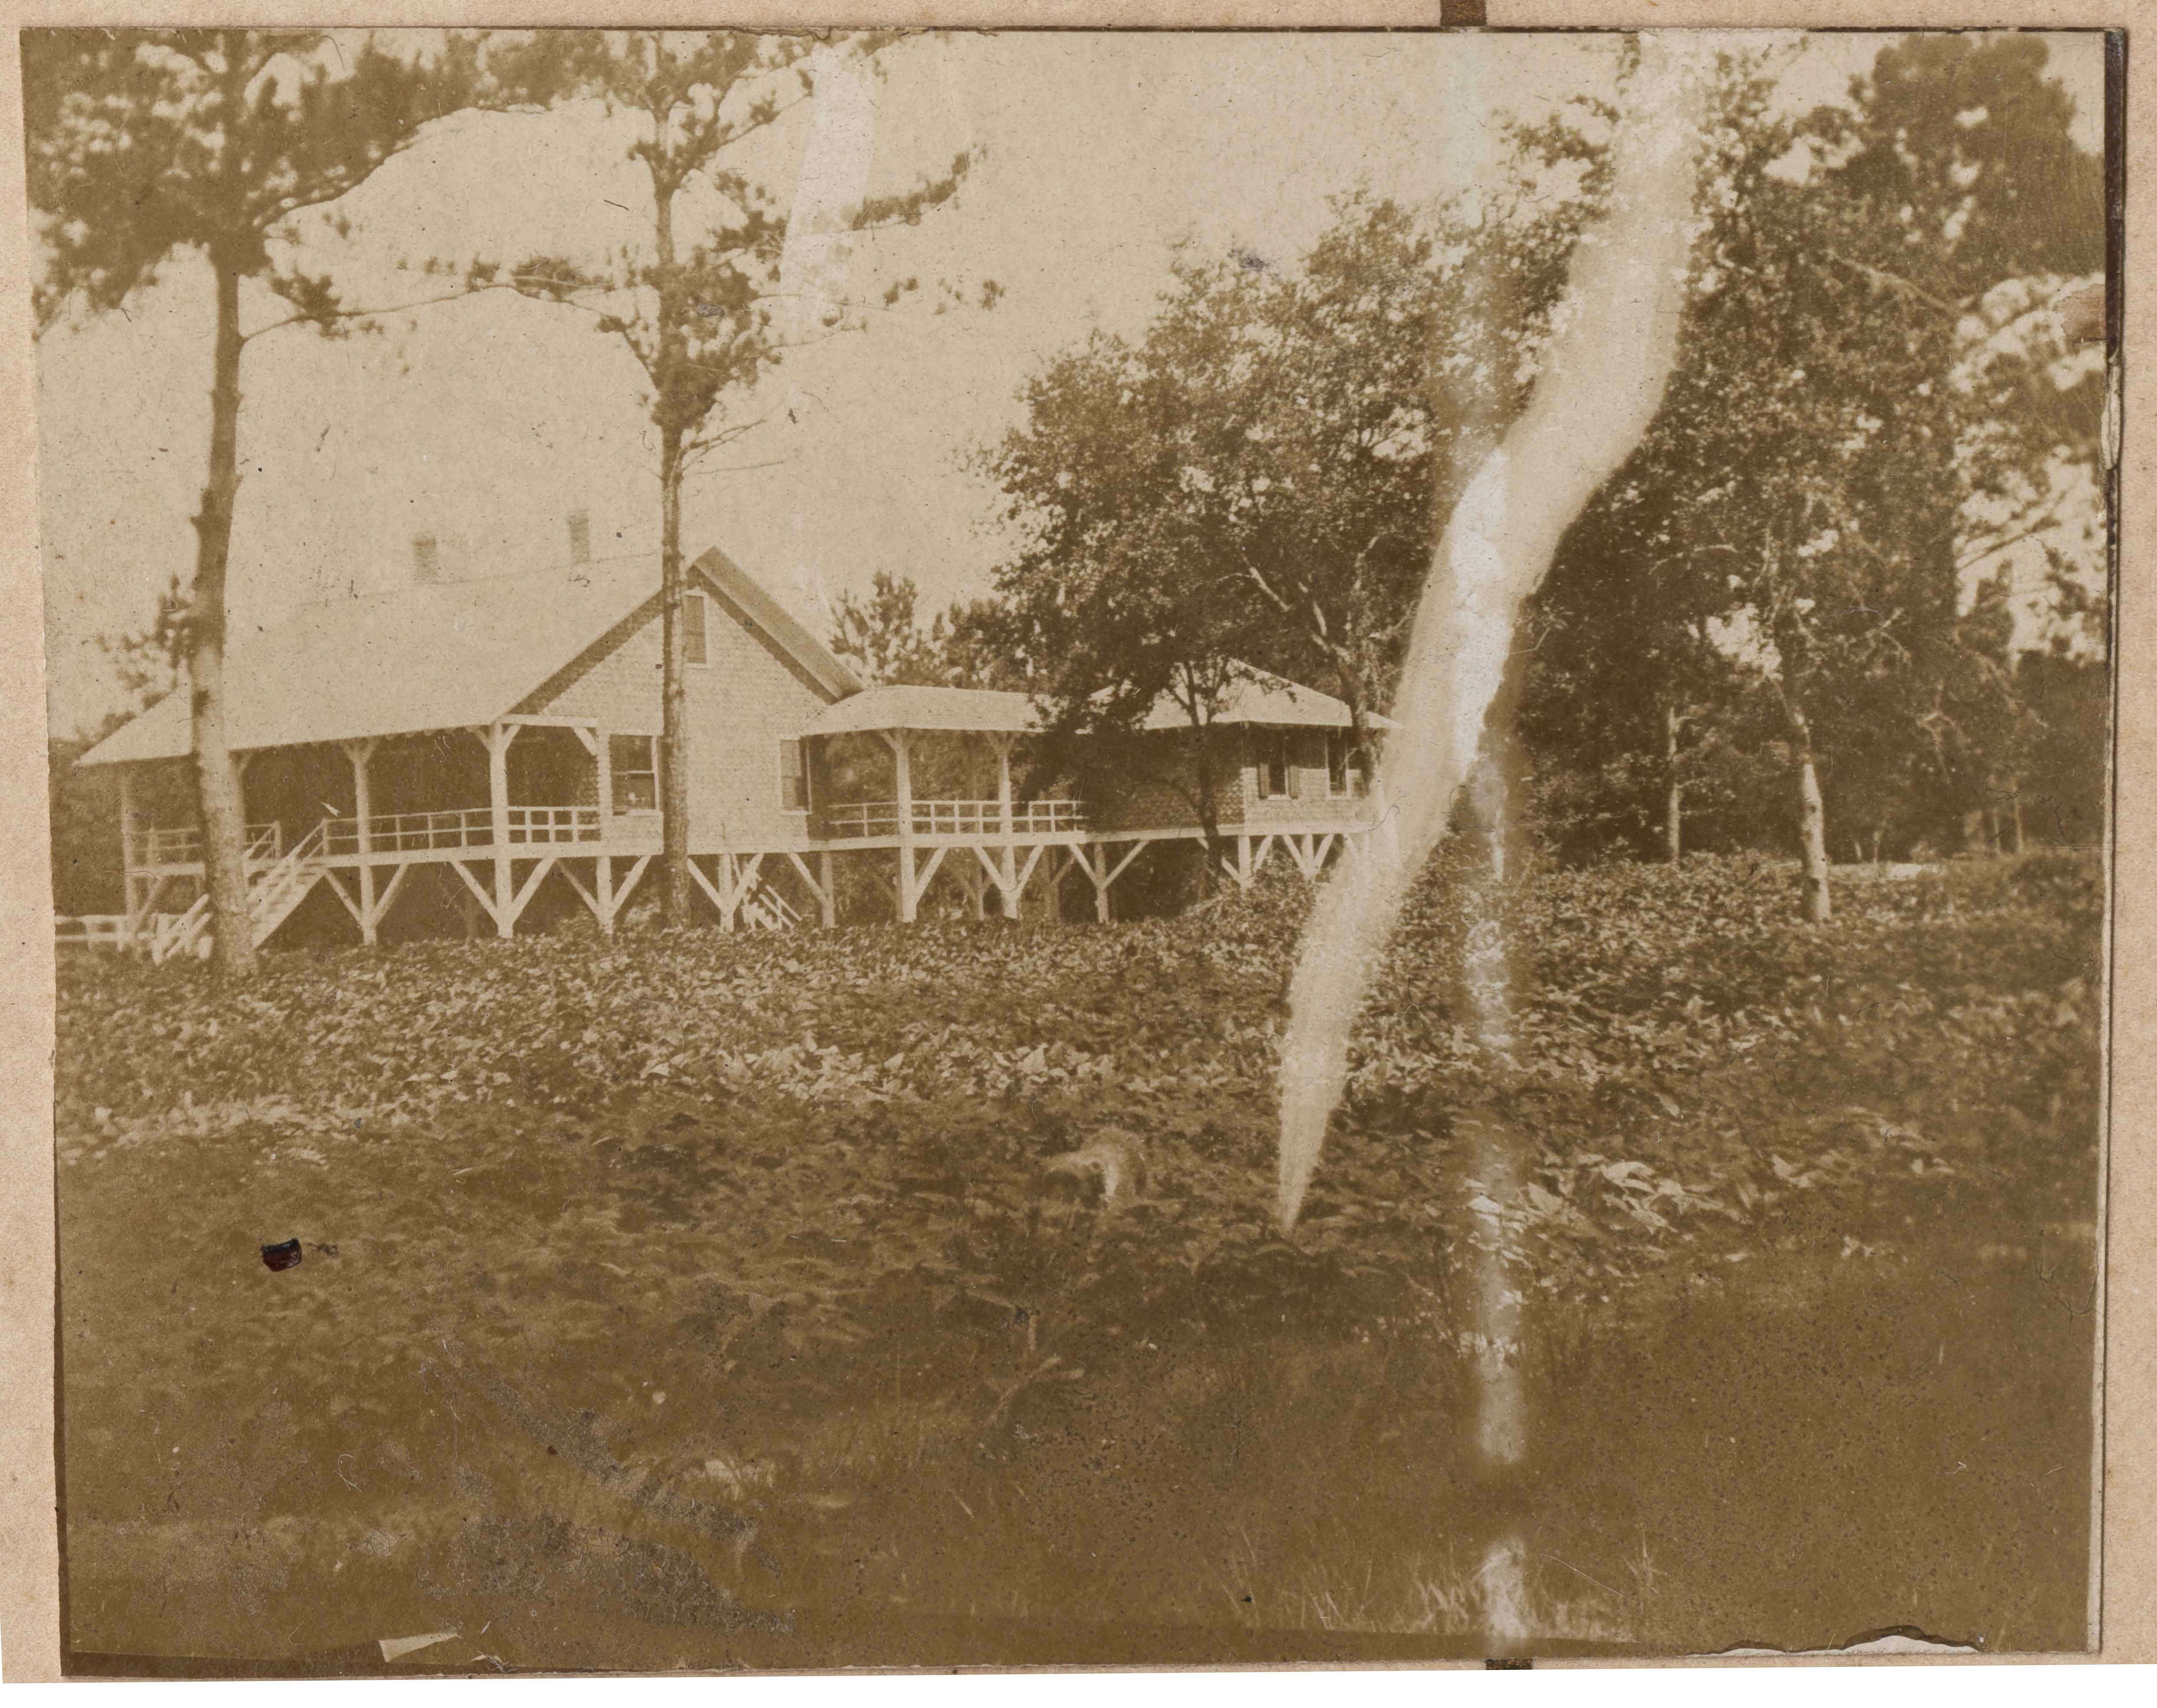 Another view of Main House at Halls Island from right showing right back porch